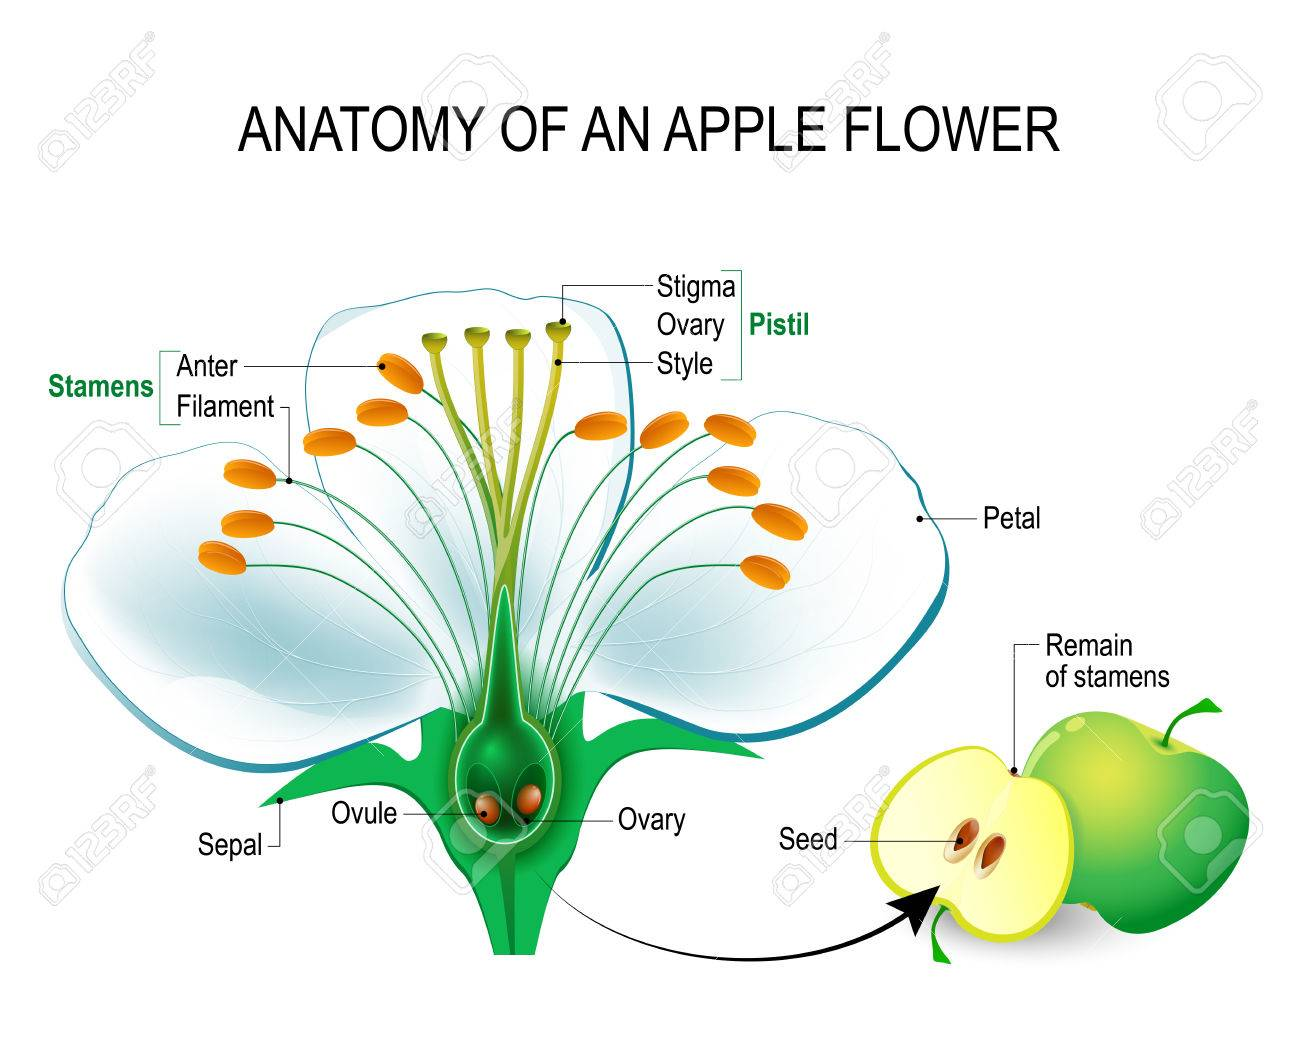 Anatomy of an apple flower flower parts detailed diagram with anatomy of an apple flower flower parts detailed diagram with cross section useful ccuart